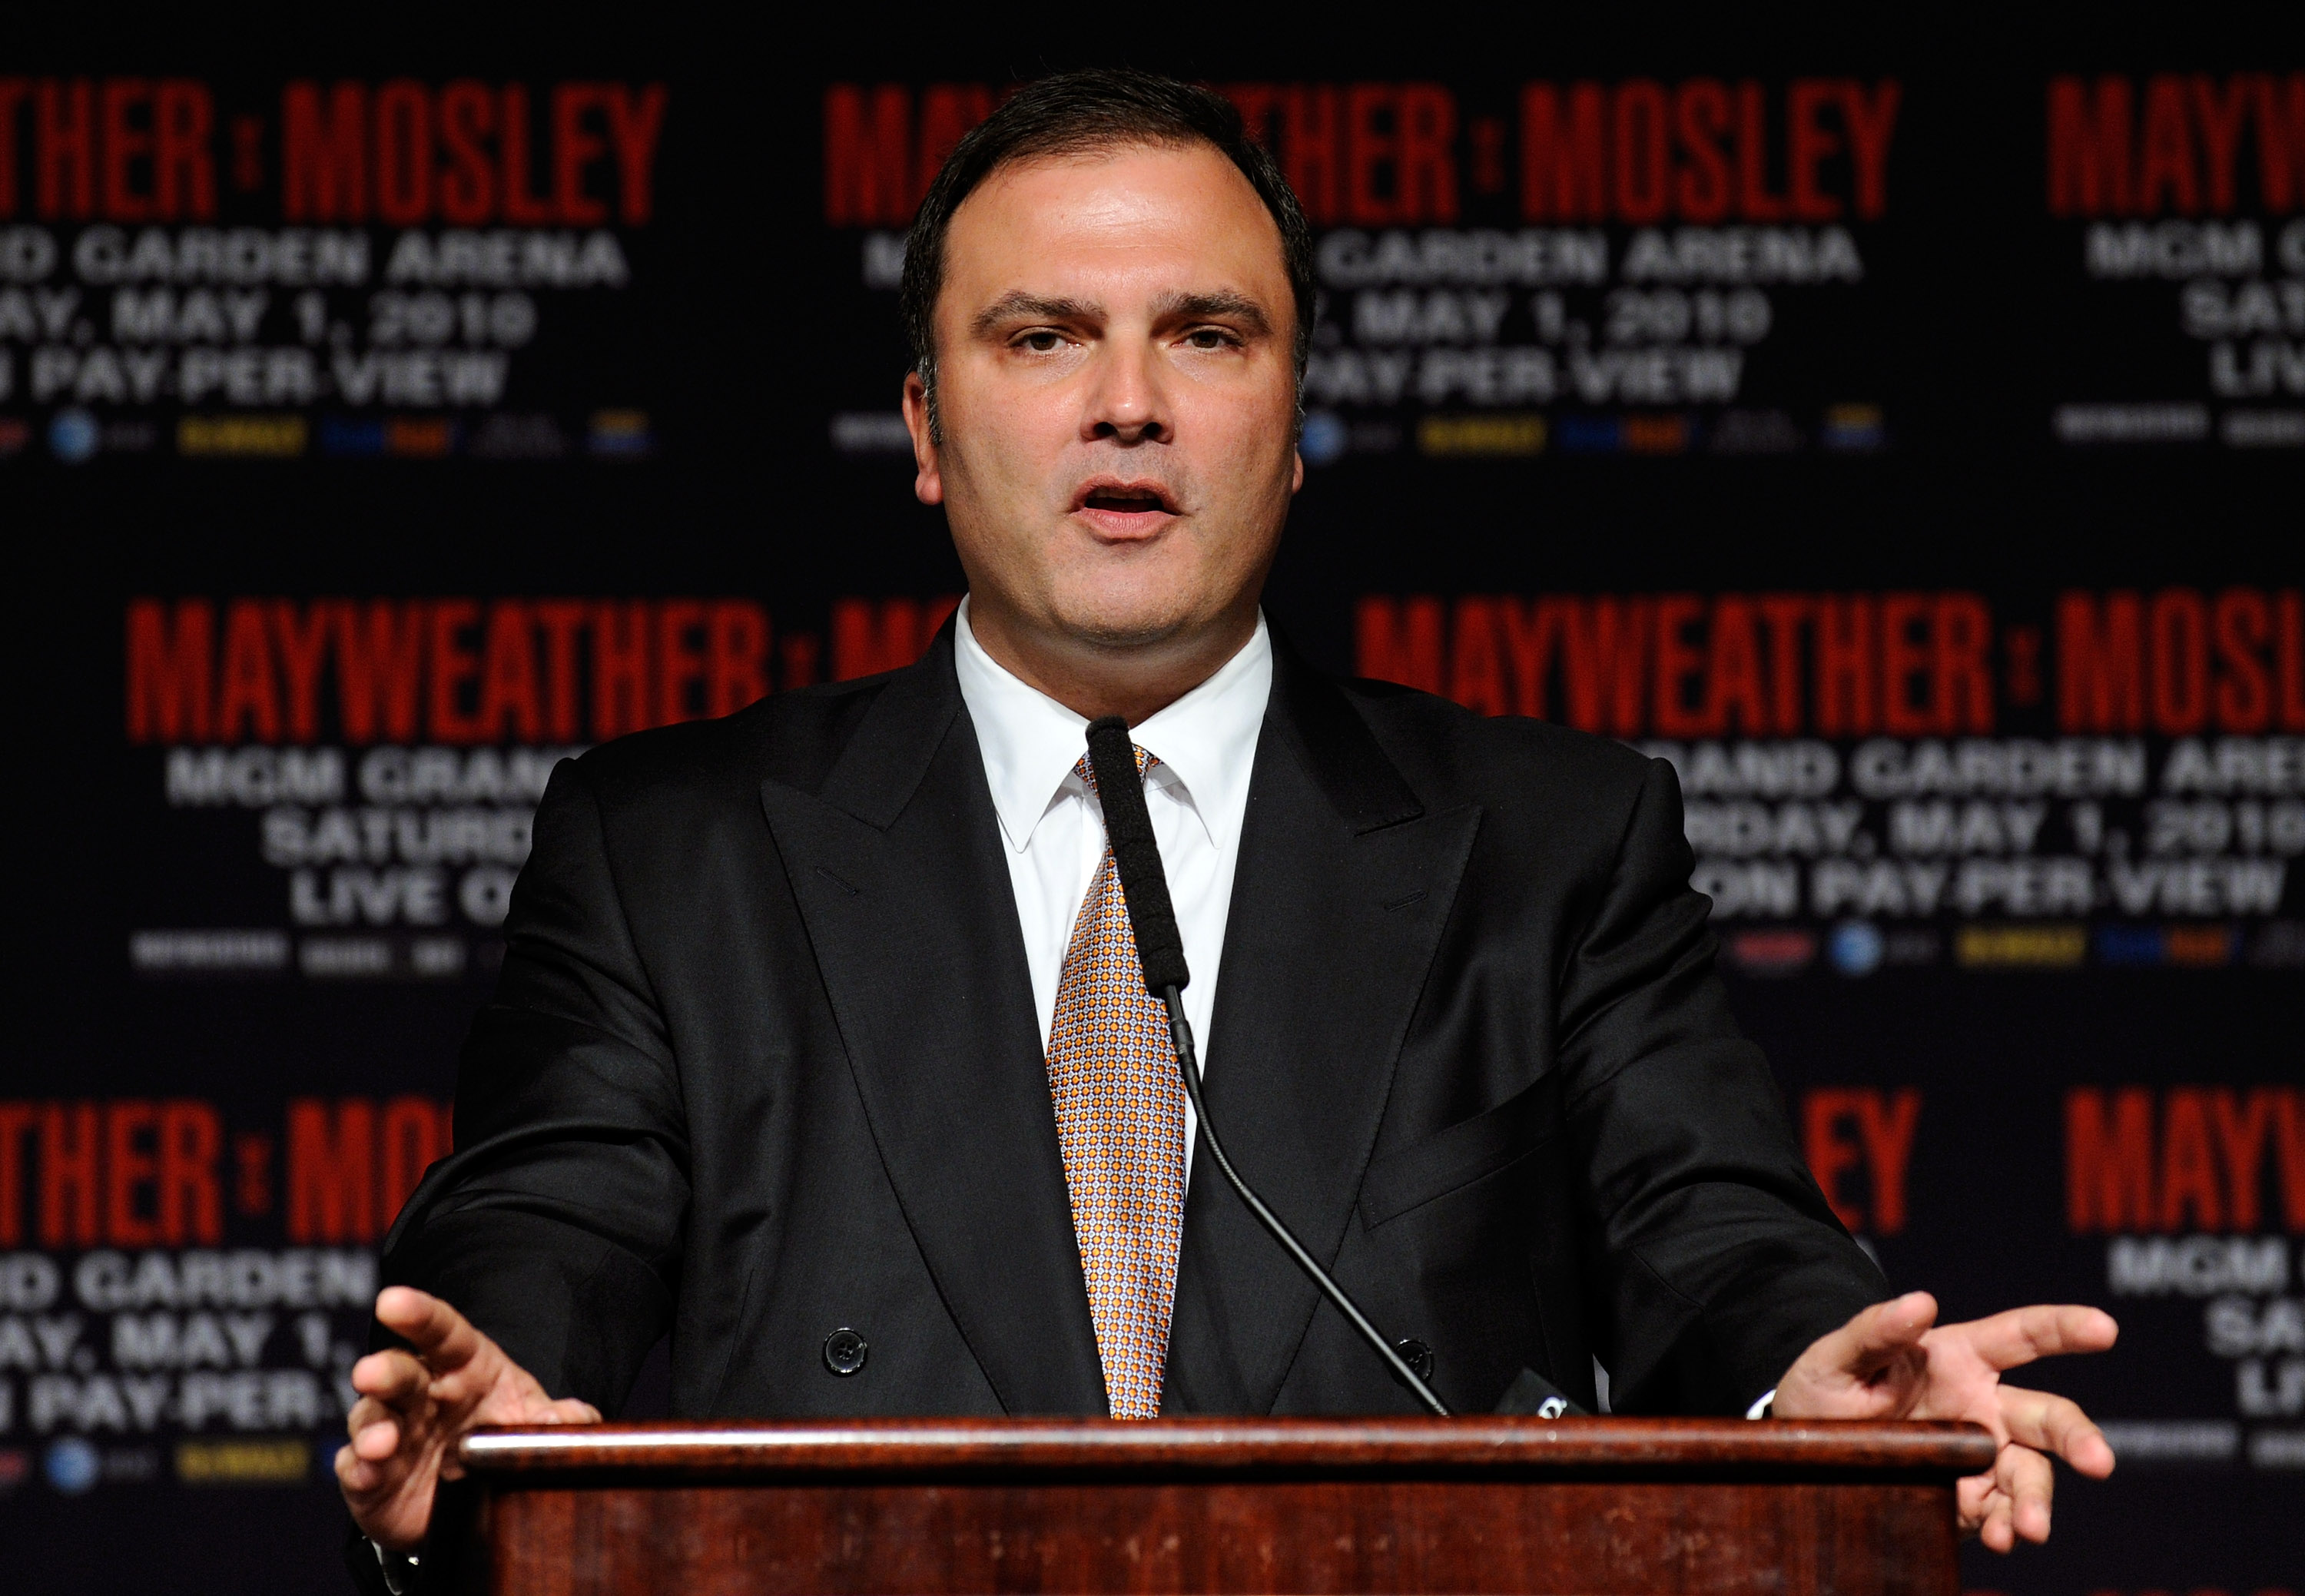 LAS VEGAS - APRIL 28:  CEO of Golden Boy Promotions Richard Schaefer speaks during the final news conference for the bout between Floyd Mayweather Jr. and Shane Mosley at the MGM Grand Hotel/Casino April 28, 2010 in Las Vegas, Nevada. Mayweather and Mosle